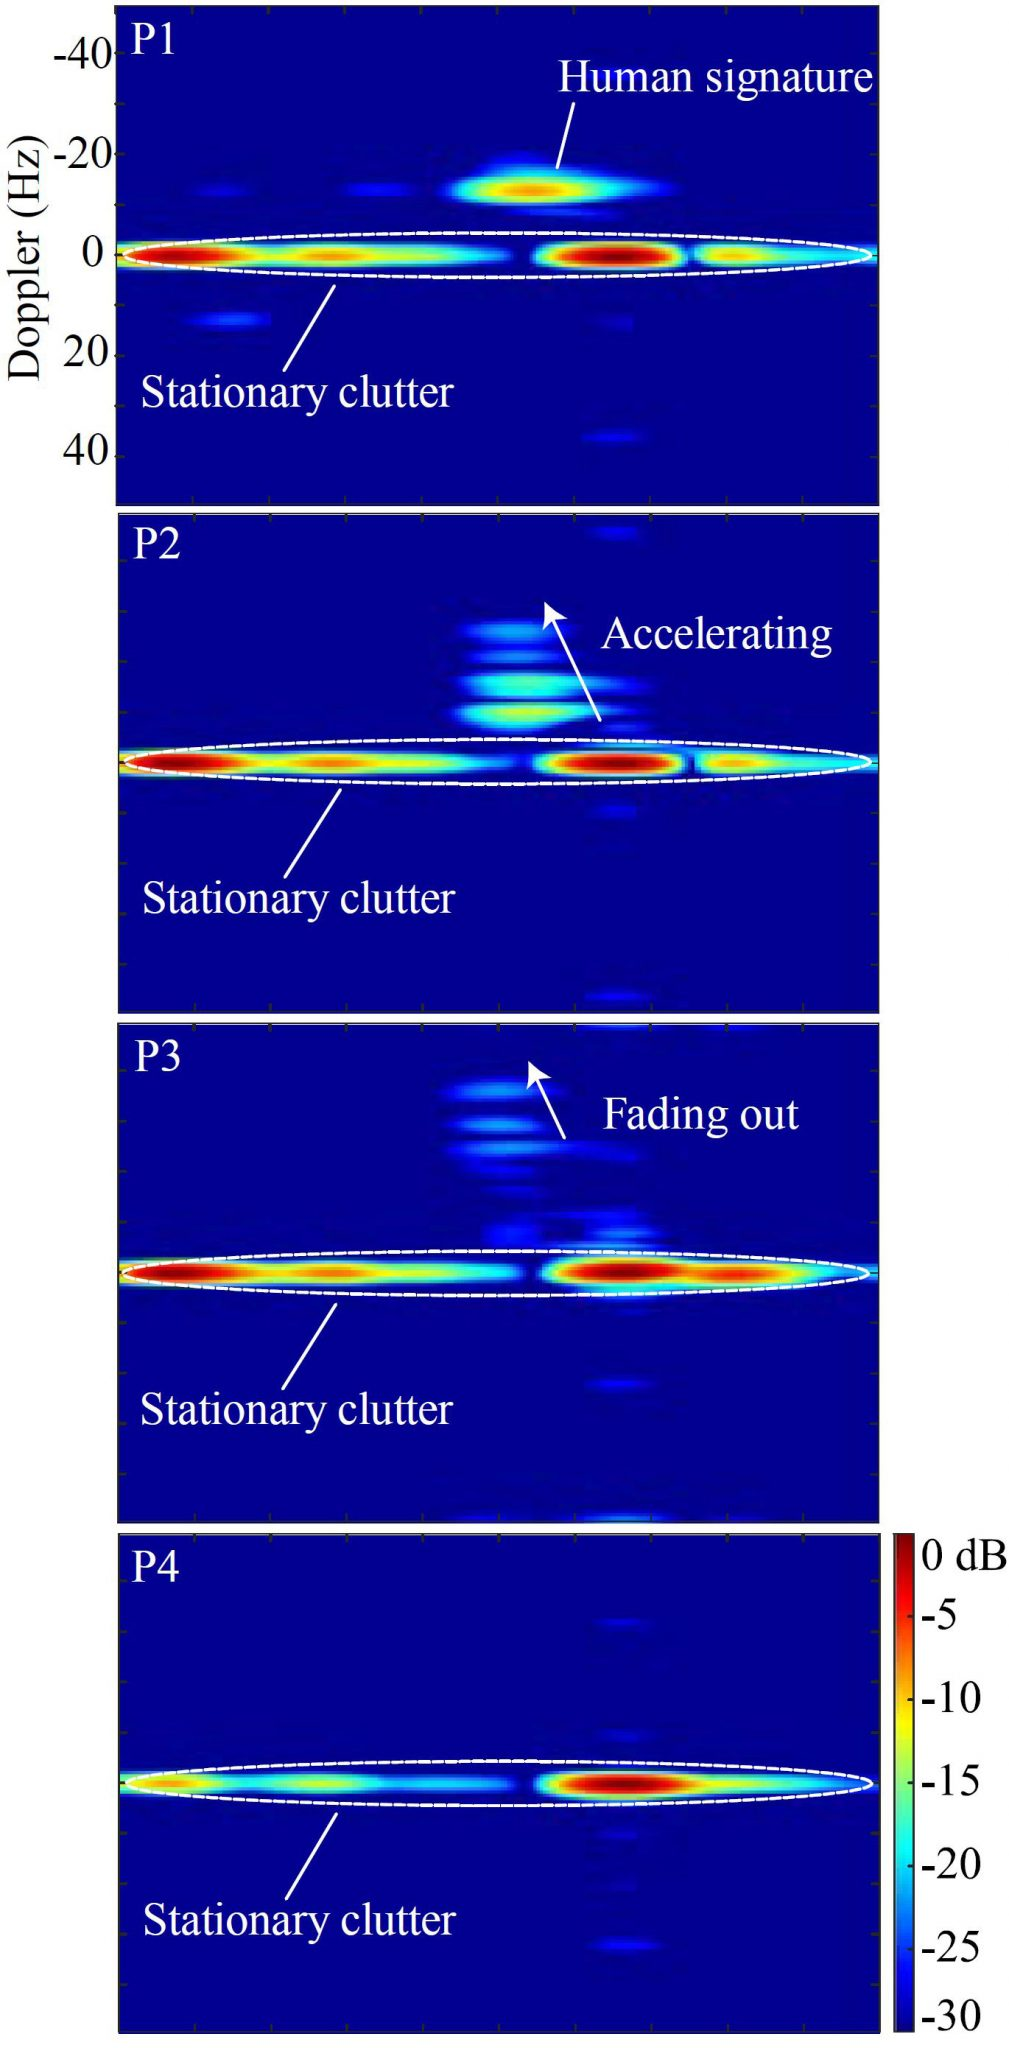 Fig. 12. Corresponding range-Doppler images of a fall incident